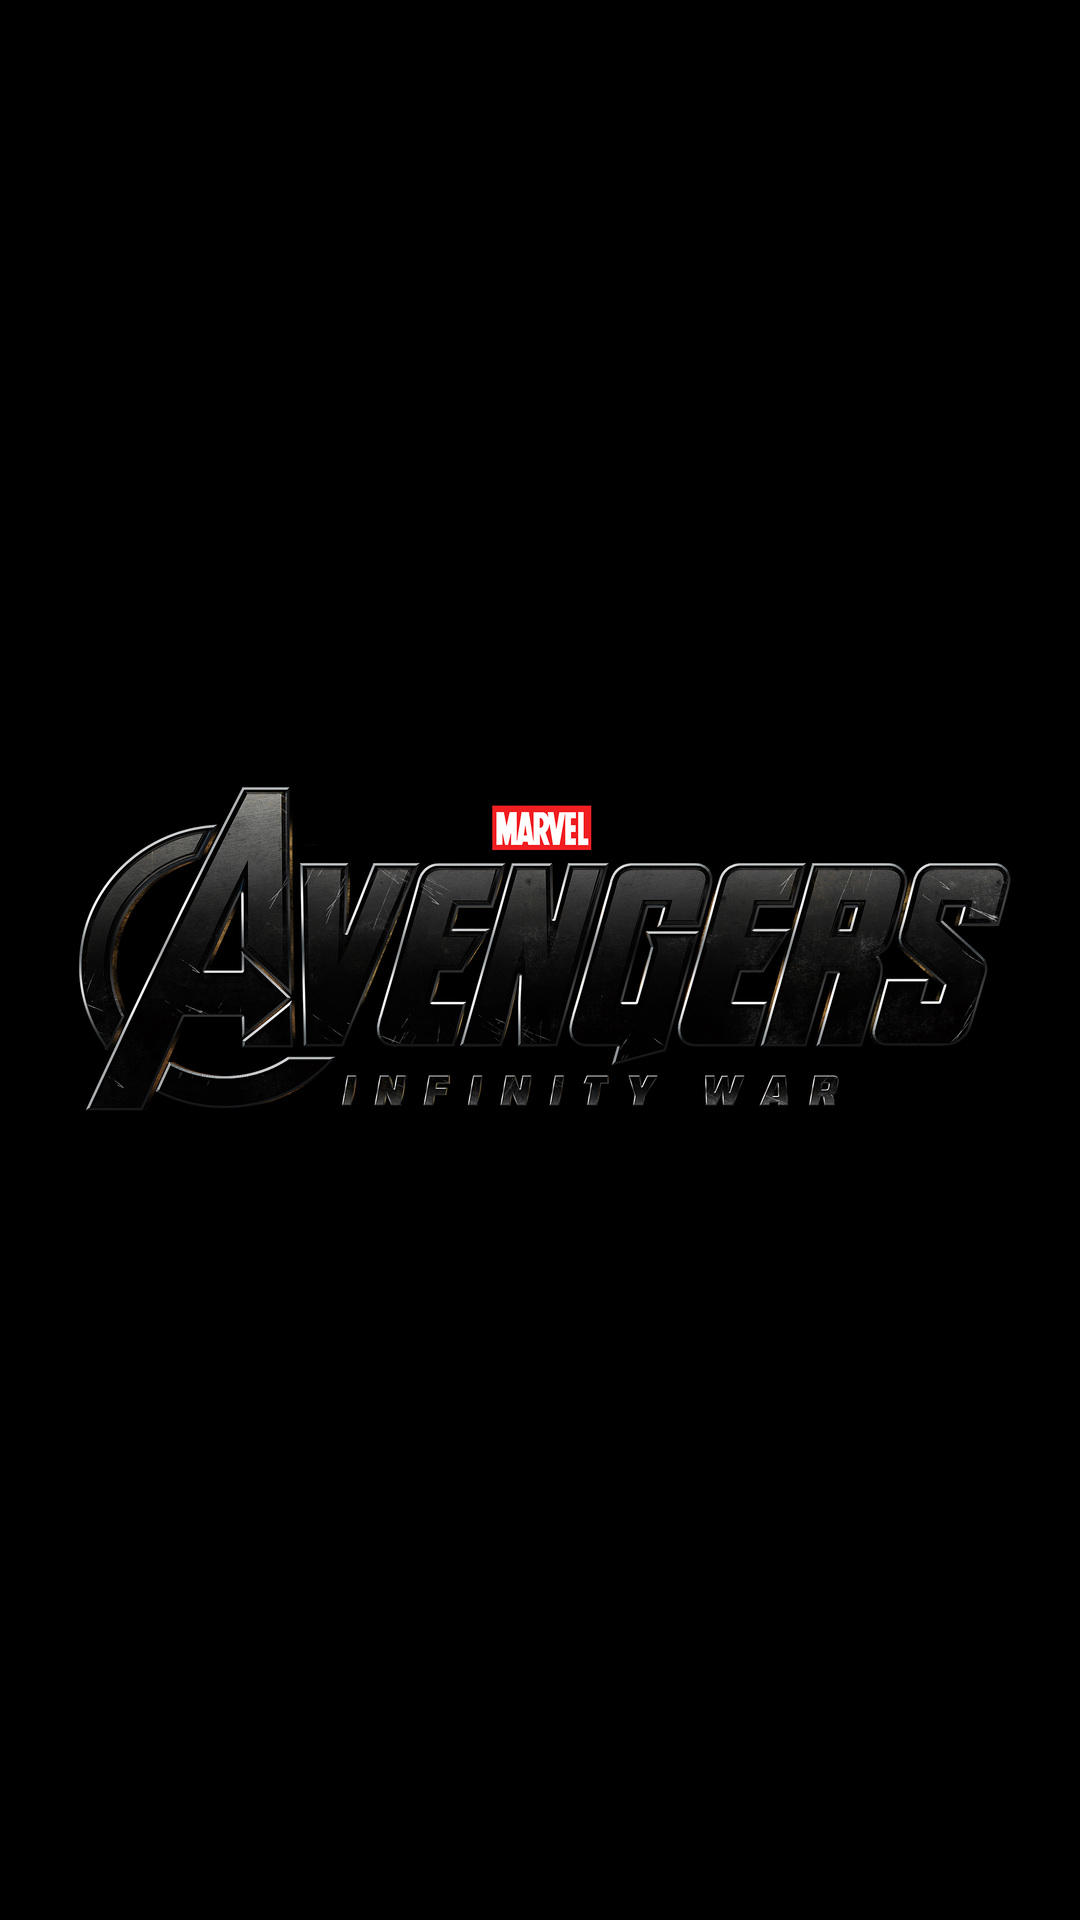 Avengers Infinity War Logo Download 4k Wallpapers